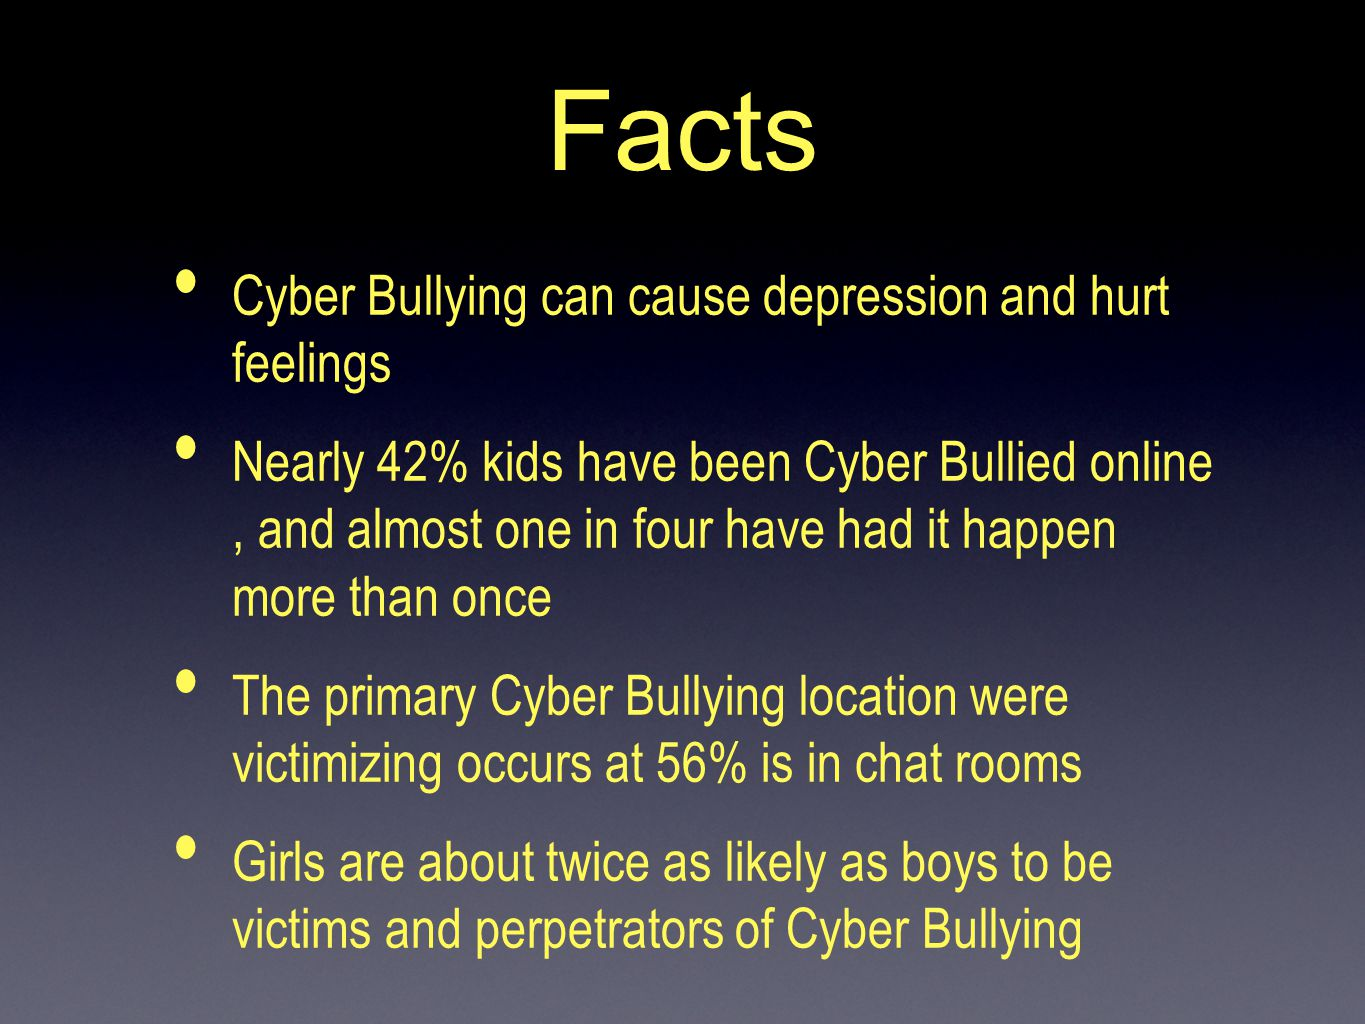 Facts Cyber Bullying can cause depression and hurt feelings Nearly 42% kids have been Cyber Bullied online, and almost one in four have had it happen more than once The primary Cyber Bullying location were victimizing occurs at 56% is in chat rooms Girls are about twice as likely as boys to be victims and perpetrators of Cyber Bullying